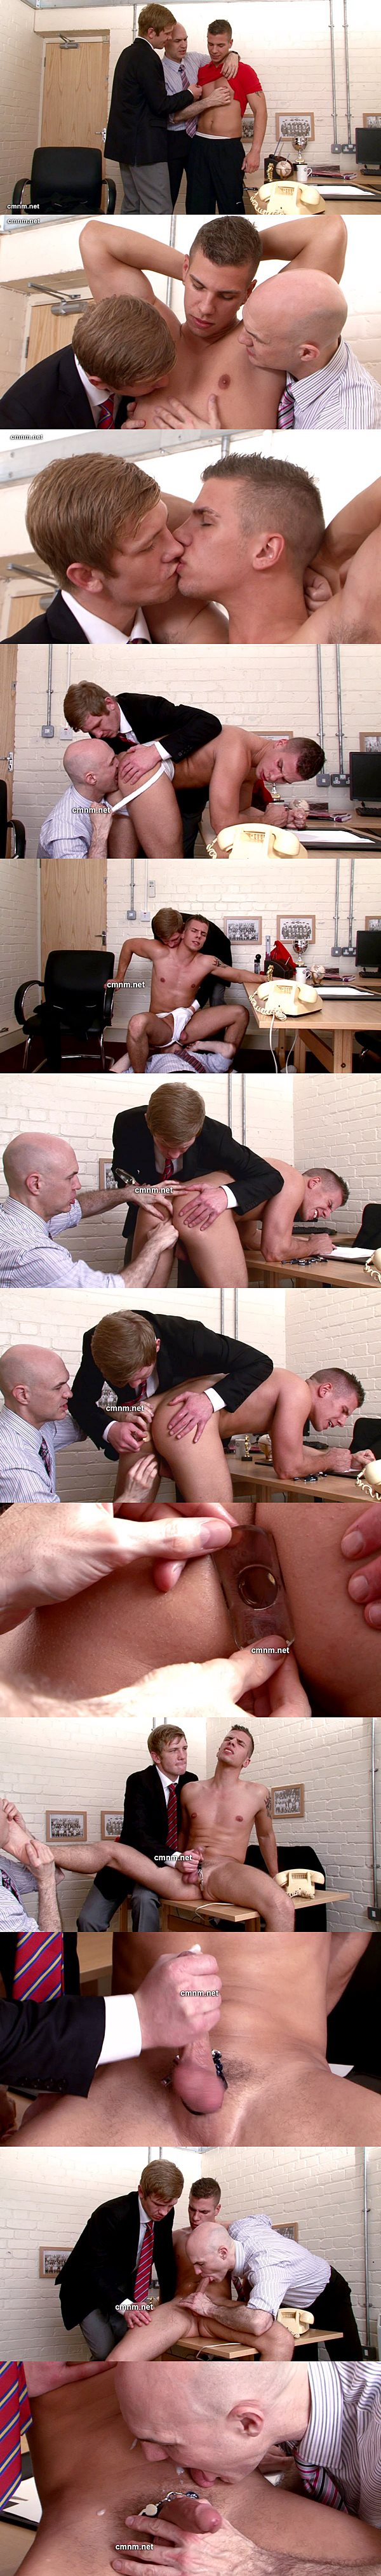 Adrian and Derek dominate hot jock Ashley (aka Paul Walker) and Ashley gets finged, rimmed, dildo-fucked and jerked off at Cmnm 02